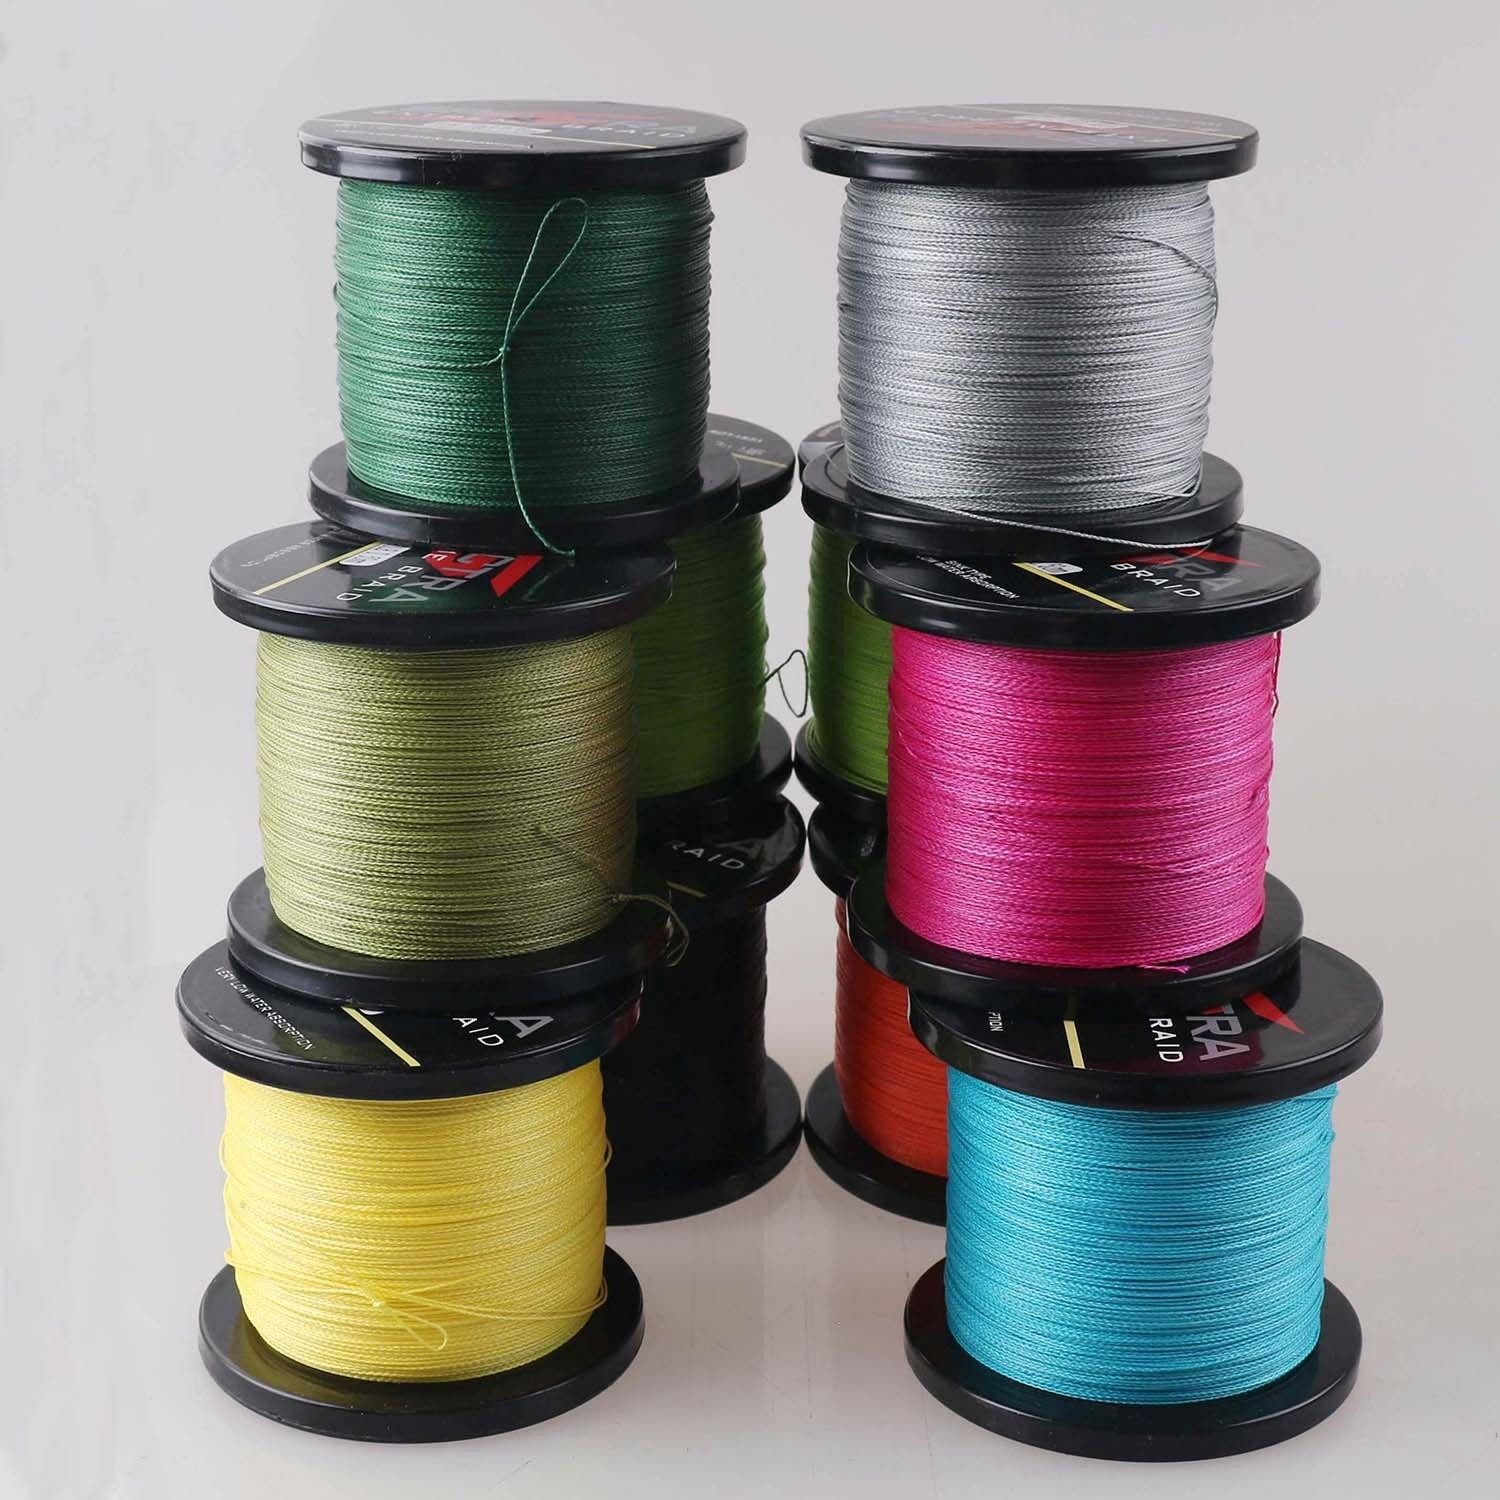 Top 1000M 13 colors 100% PE Super Strong PE Dyneema Braided Fishing Line